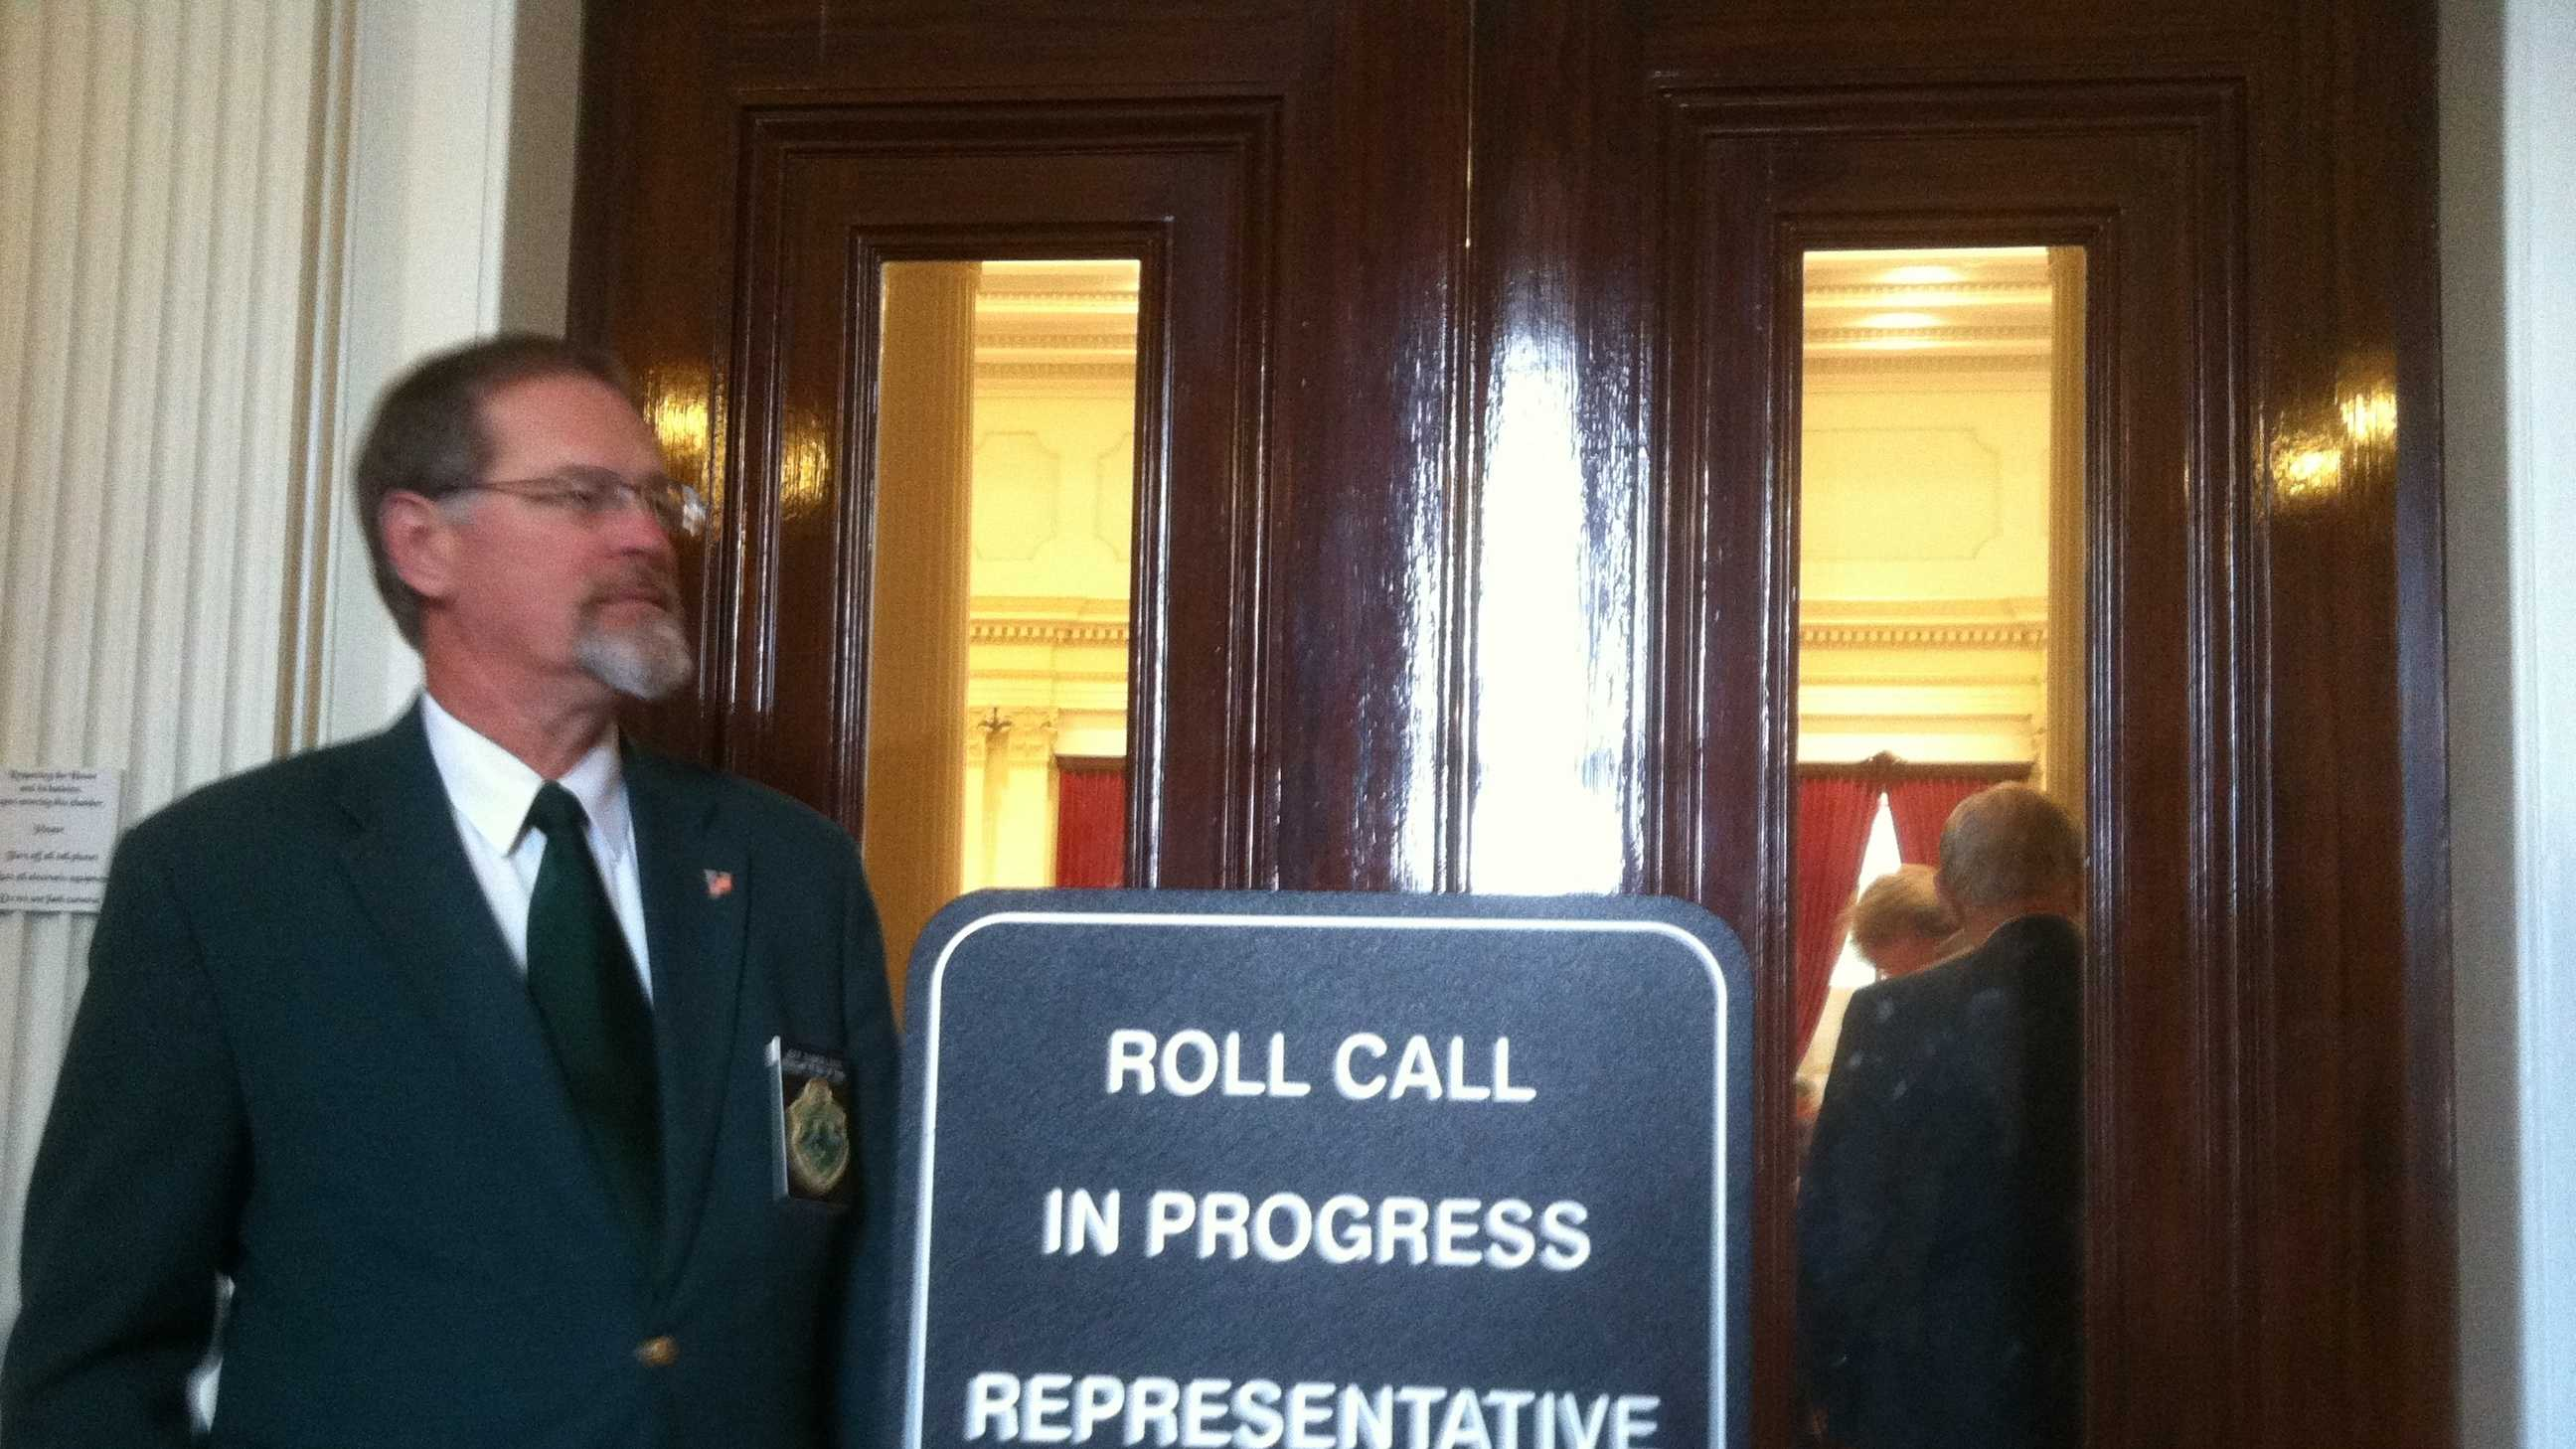 Doorkeepers monitor access to the Vt. House chamber during one of Tuesday's roll call votes.